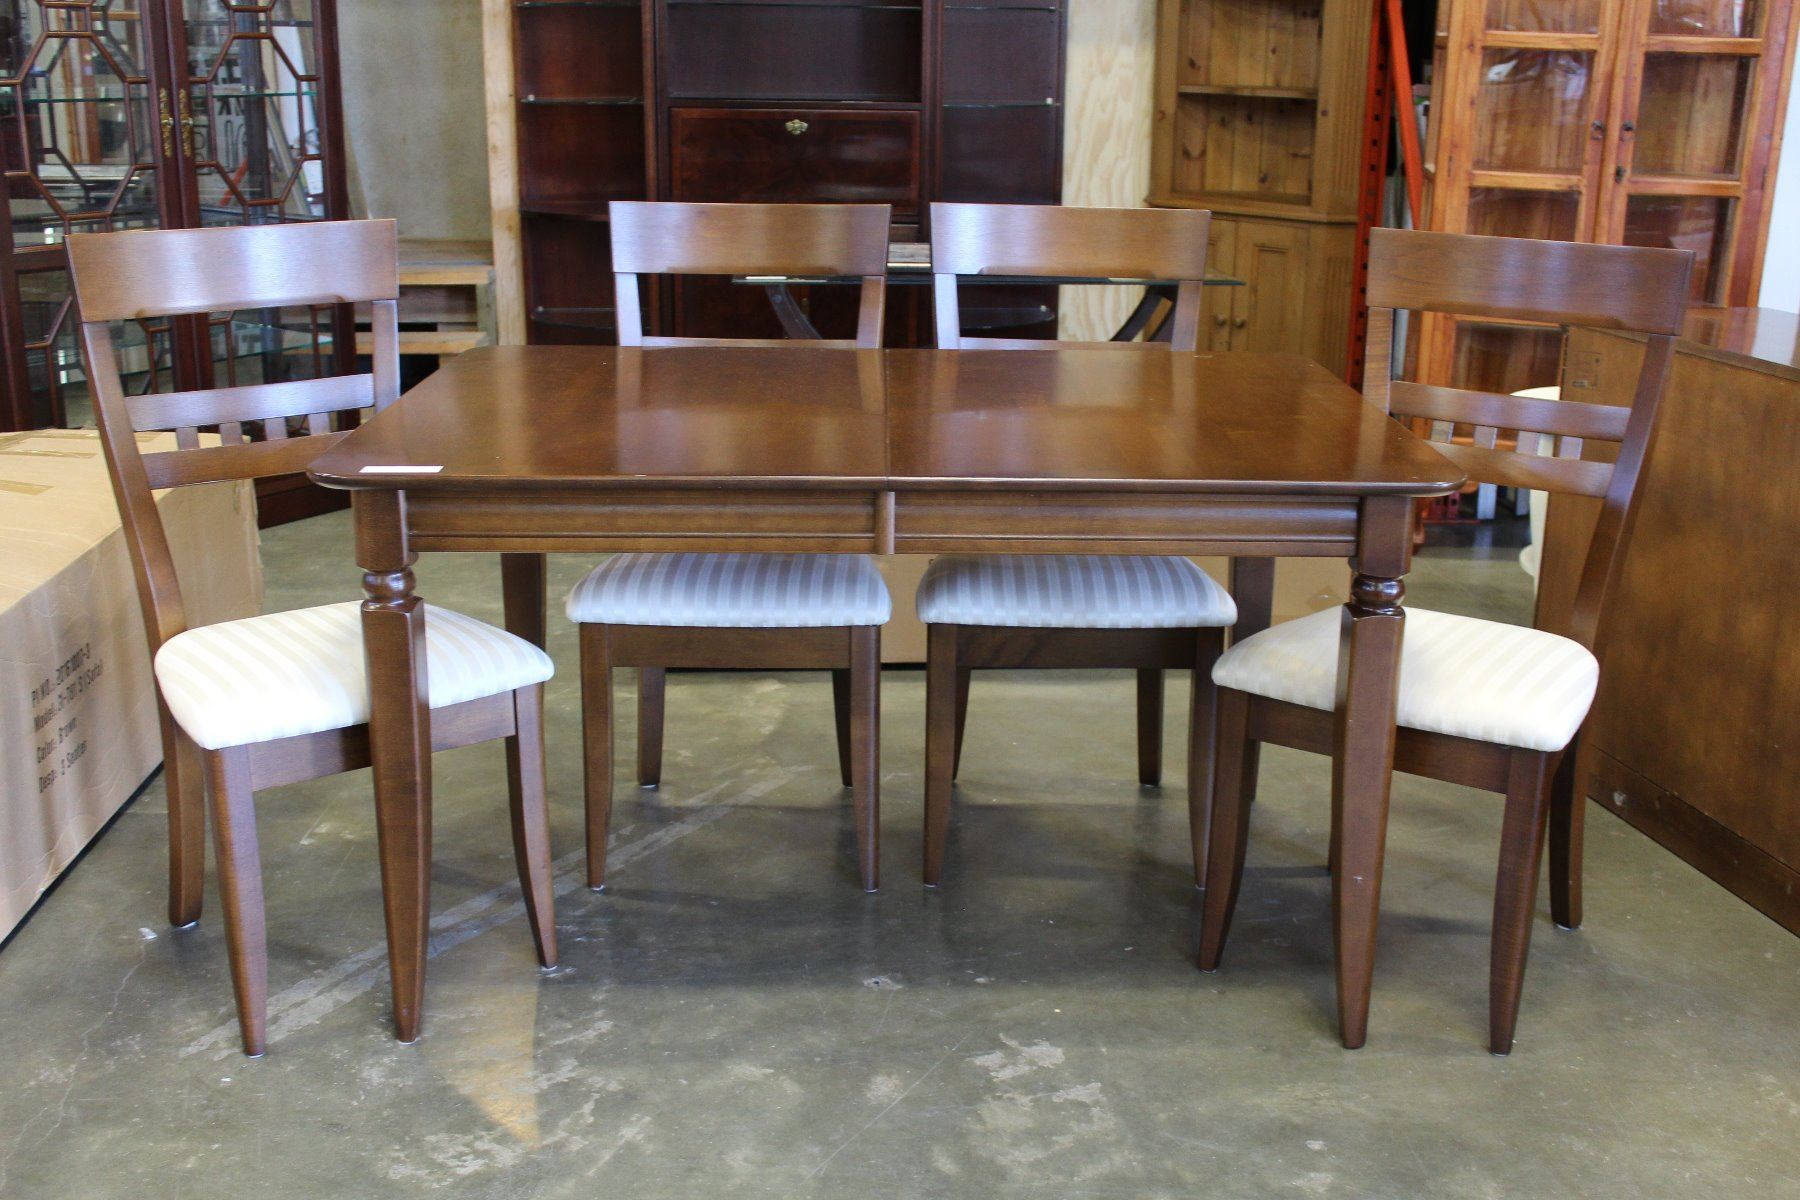 Image 1 ROXTON TEMPLE STUART MODERN DINING TABLE 4 CHAIRS LEAF